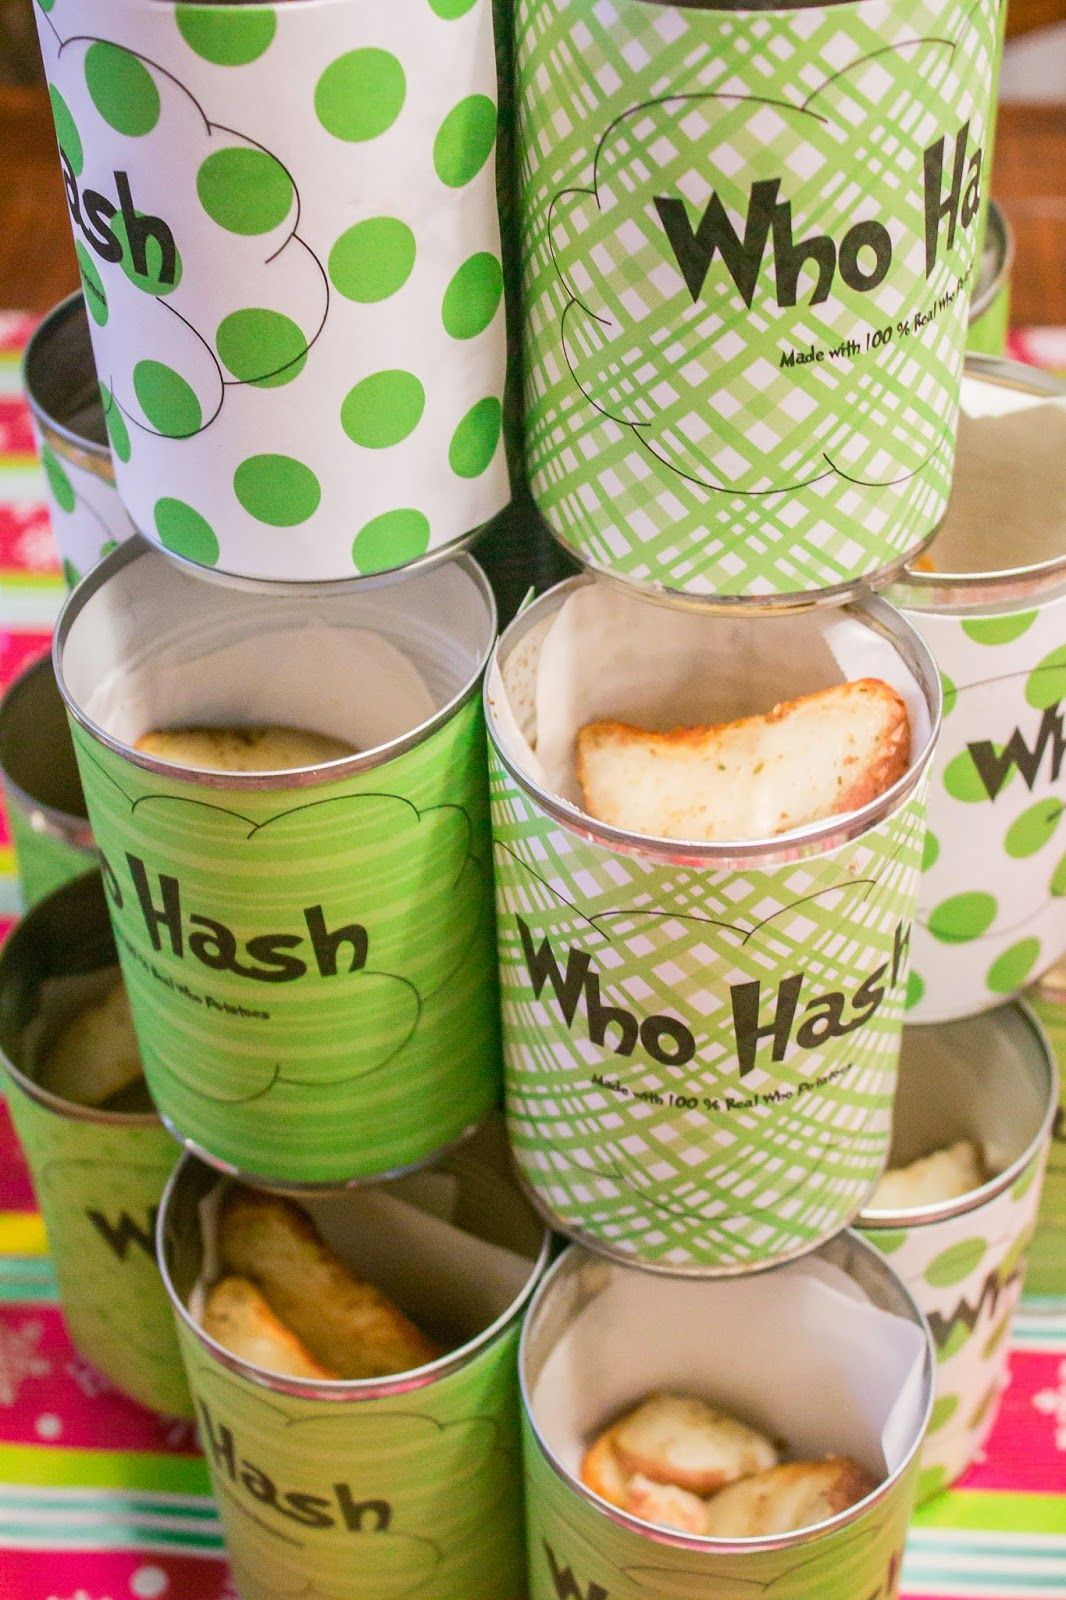 Grinch Christmas Party Ideas Part - 31: Who Hash : How The Grinch Stole Christmas / Cindy Lou-Who Inspired Birthday  Party Or Christmas Party. Perfect For A Whobilation. Who Hash Potato Can  Idea.